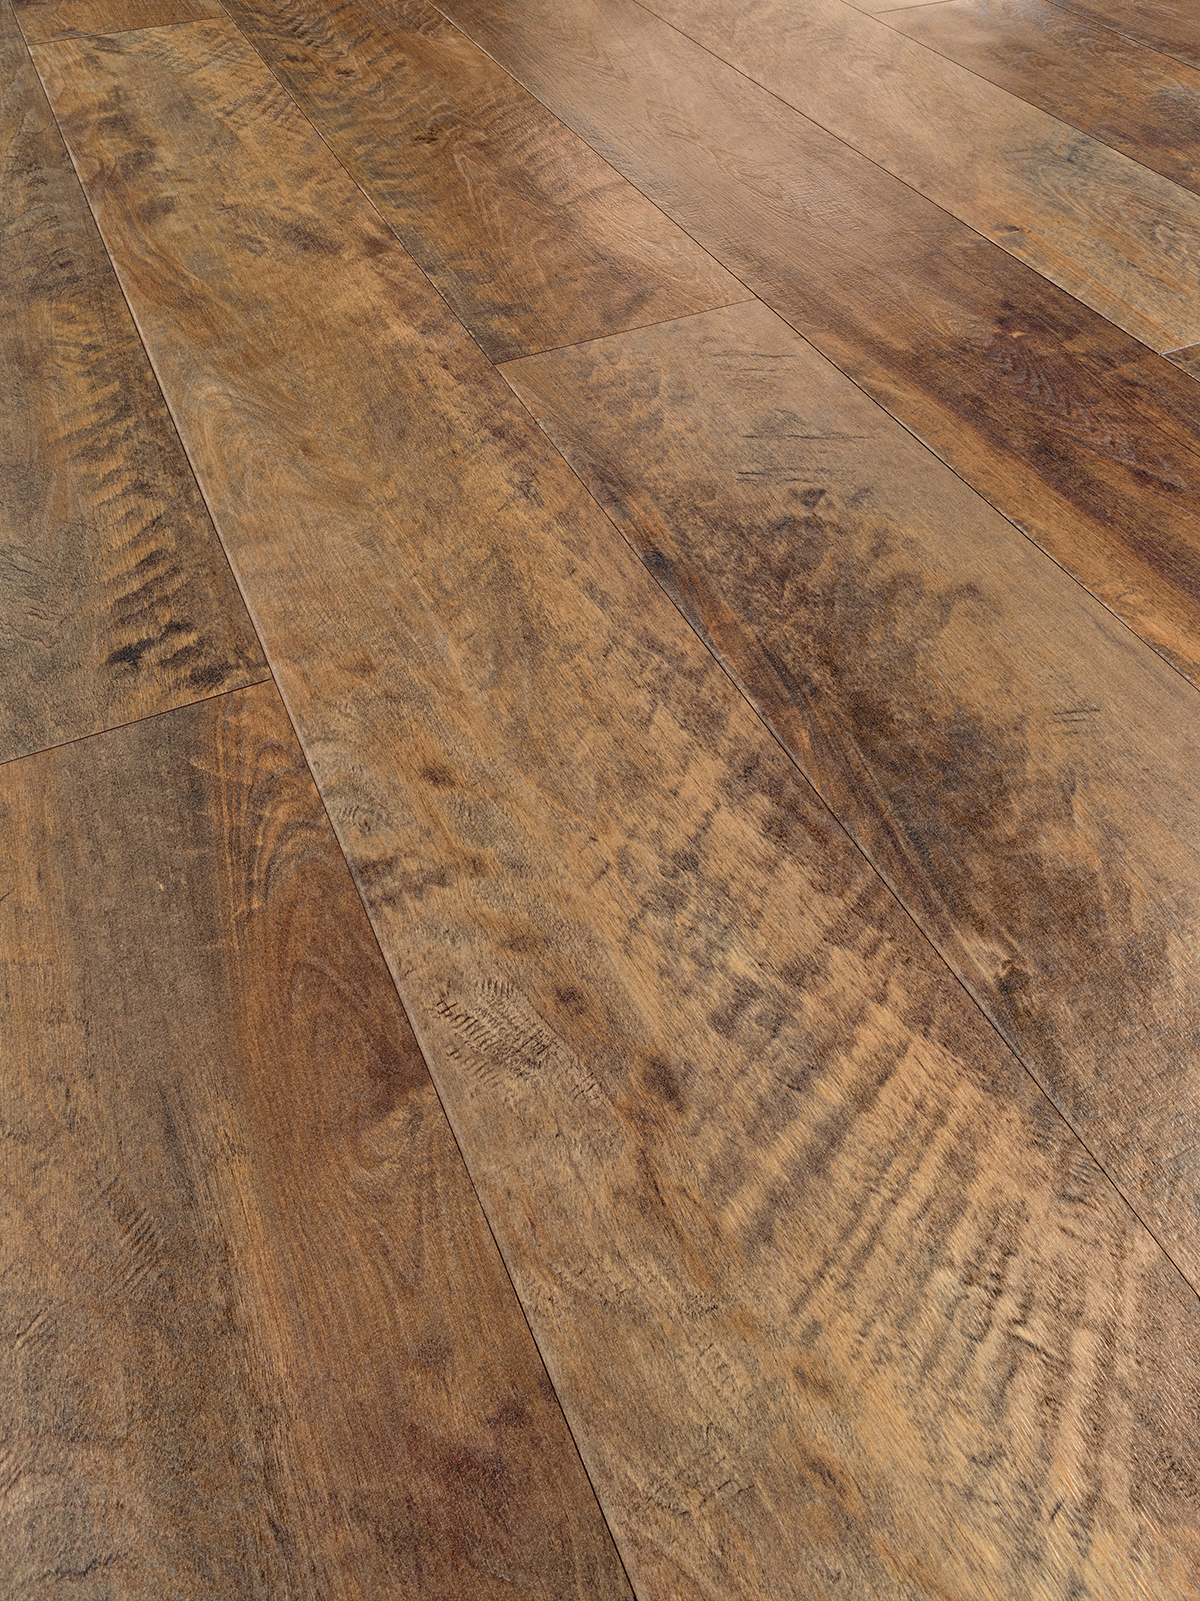 Swiss Krono Once Again Expands, Mohawk Herald Laminate Flooring Reviews